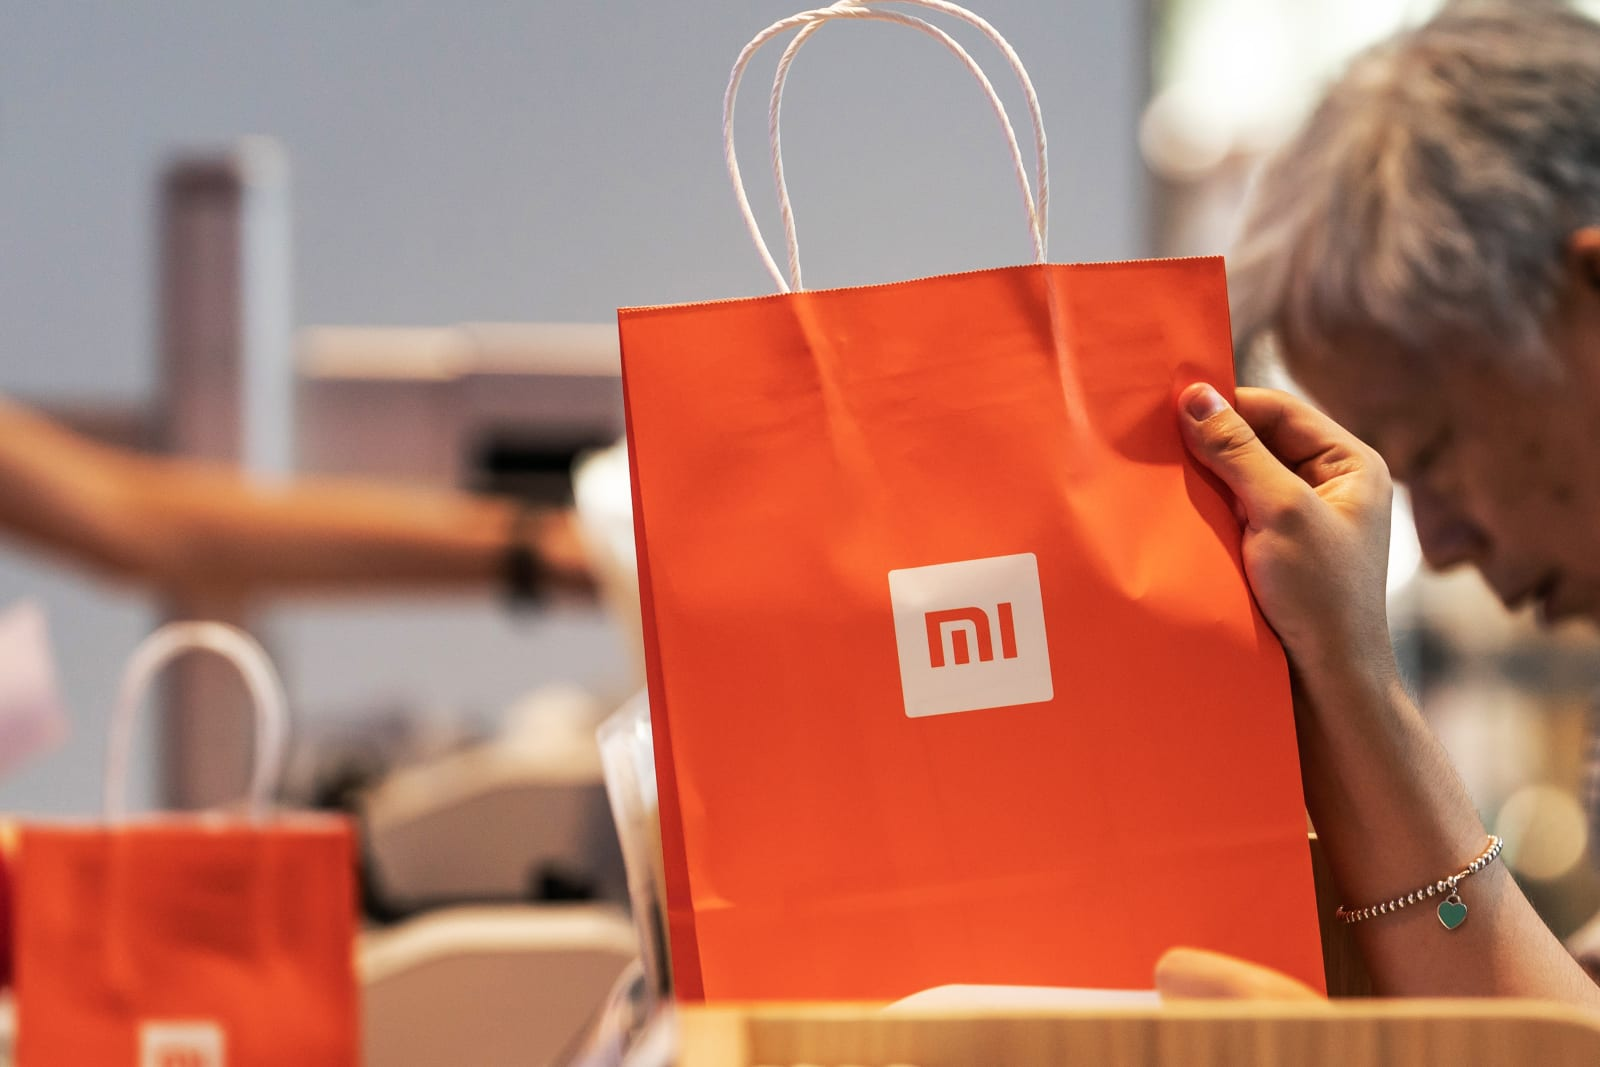 Xiaomi Corp. Mi 8 Smartphones Go On Sale in Hong Kong Ahead of IPO